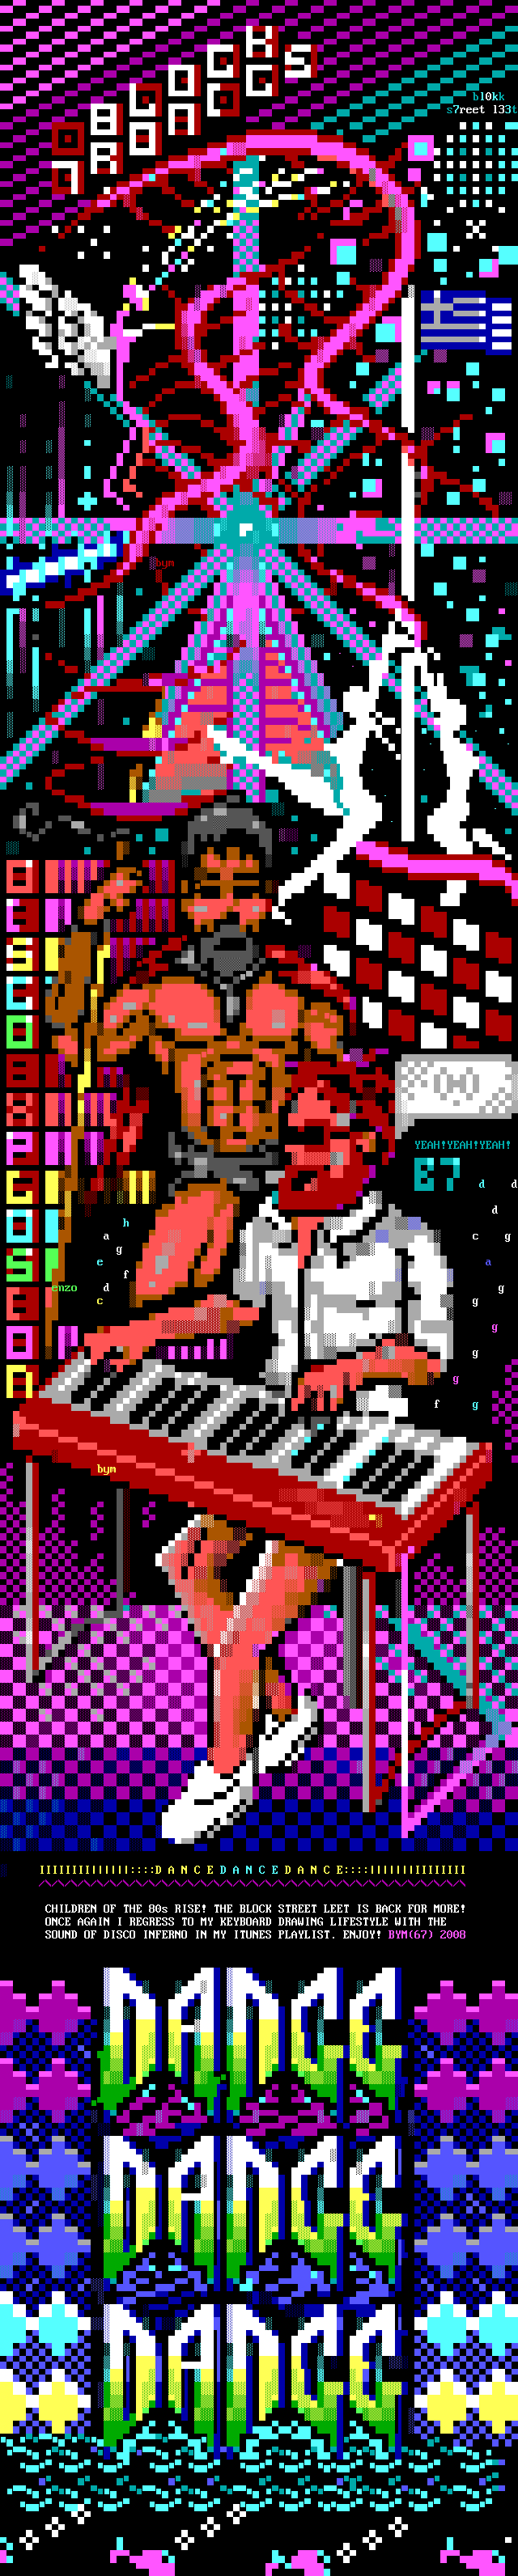 we-sparta.ans, purple, red, white, yellow, green, logo, font, dance, music, play, beard, sparta, spear, men, man, glasses, piano, eletronic, ansi, ansi joint, enzo, luciano, luciano ayres, bym, movie, movies, big yellow man